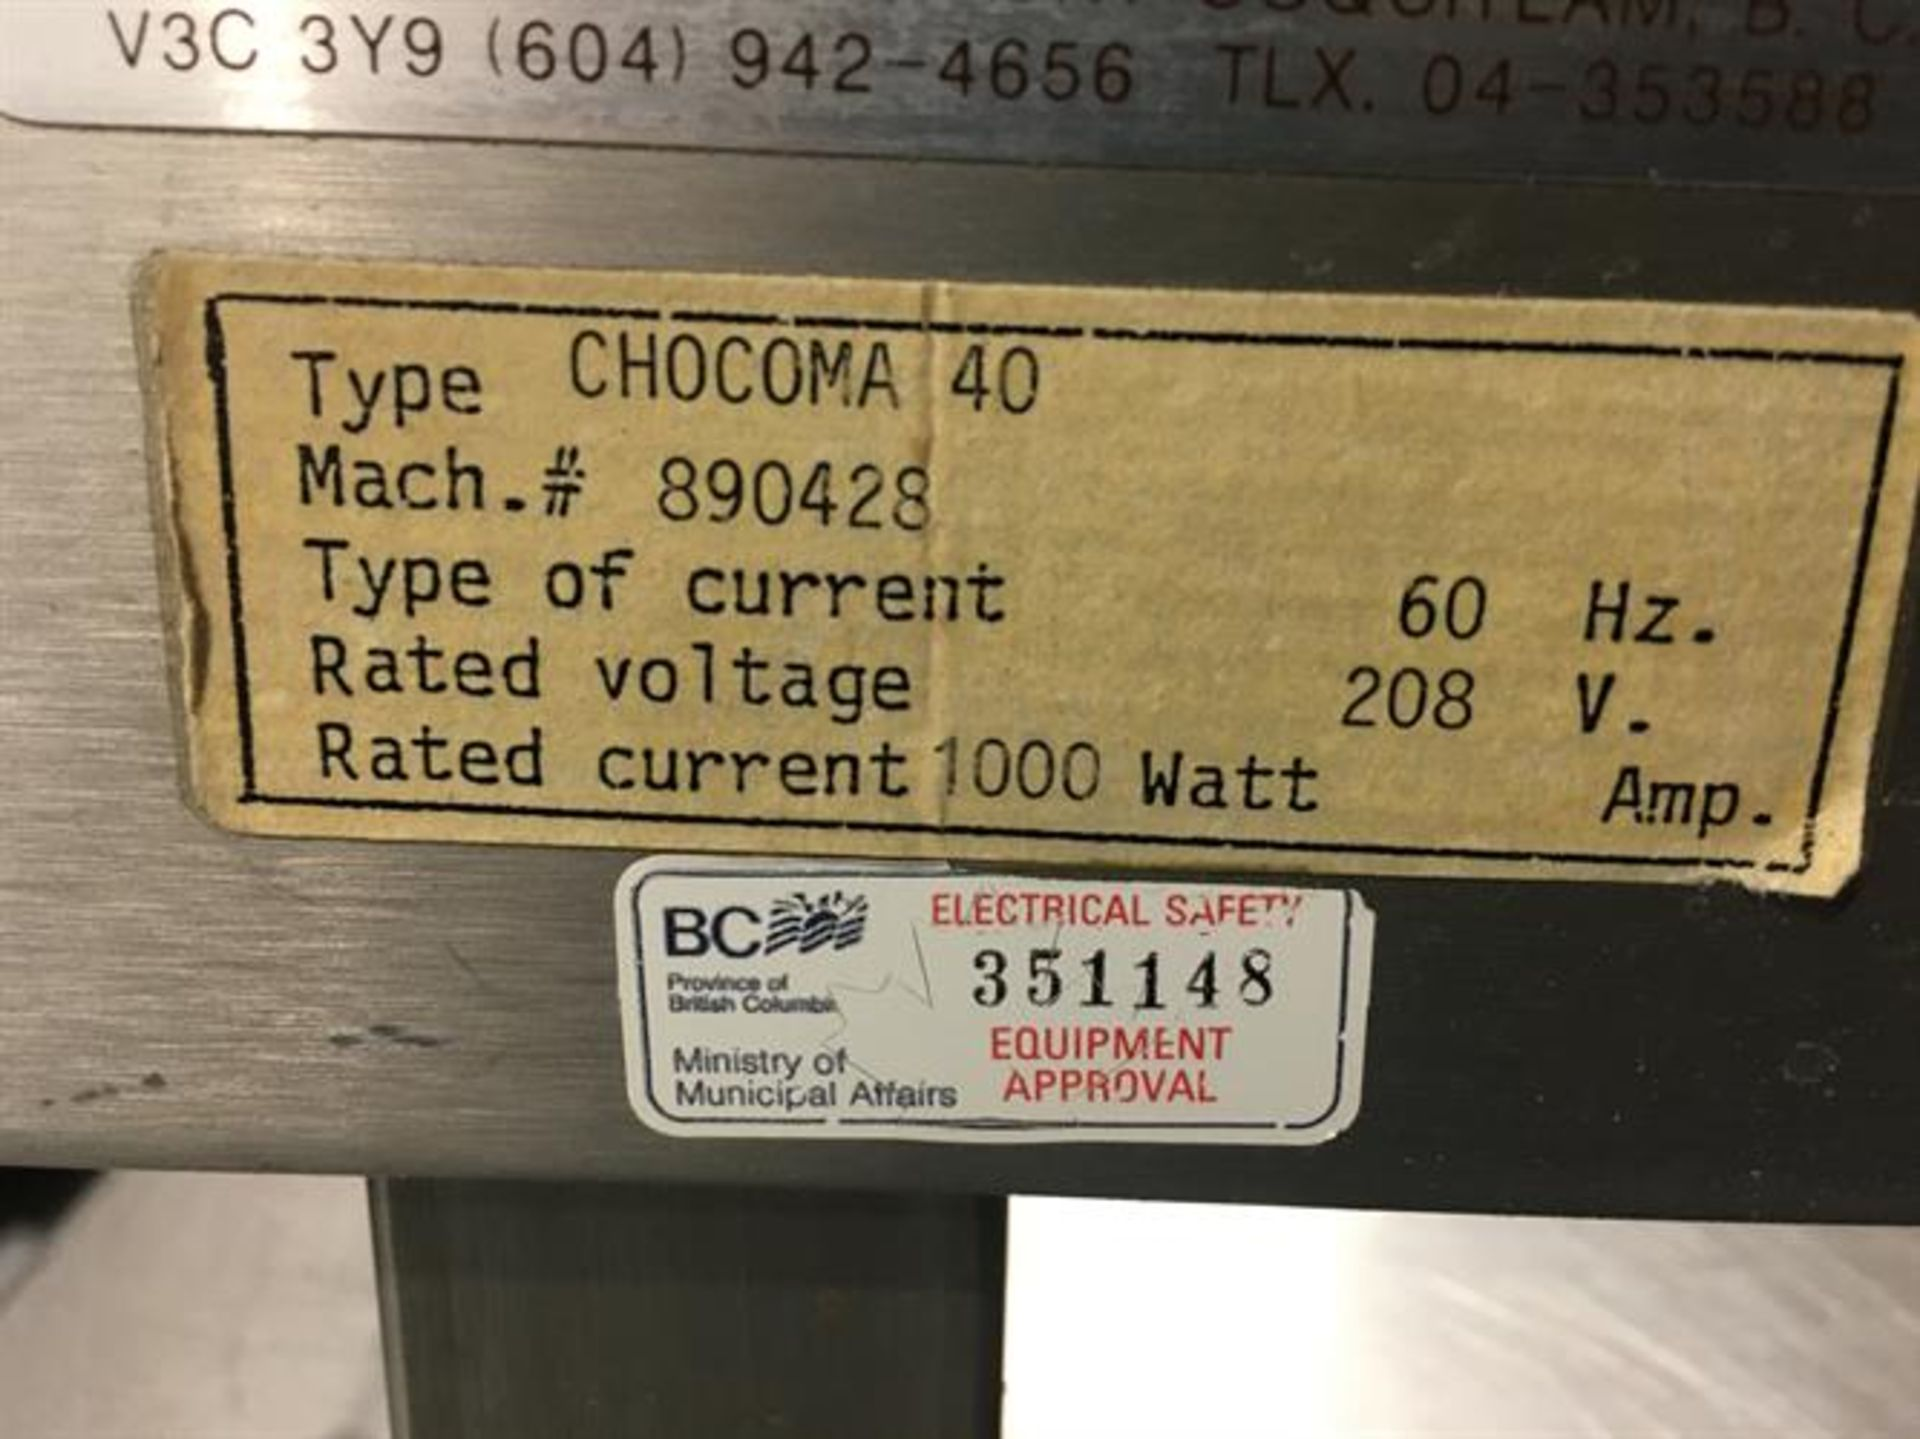 Chocoma 40-kg Tempering Melter - Wheel type - Electrically heated with digital thermostat - Tank - Image 4 of 5